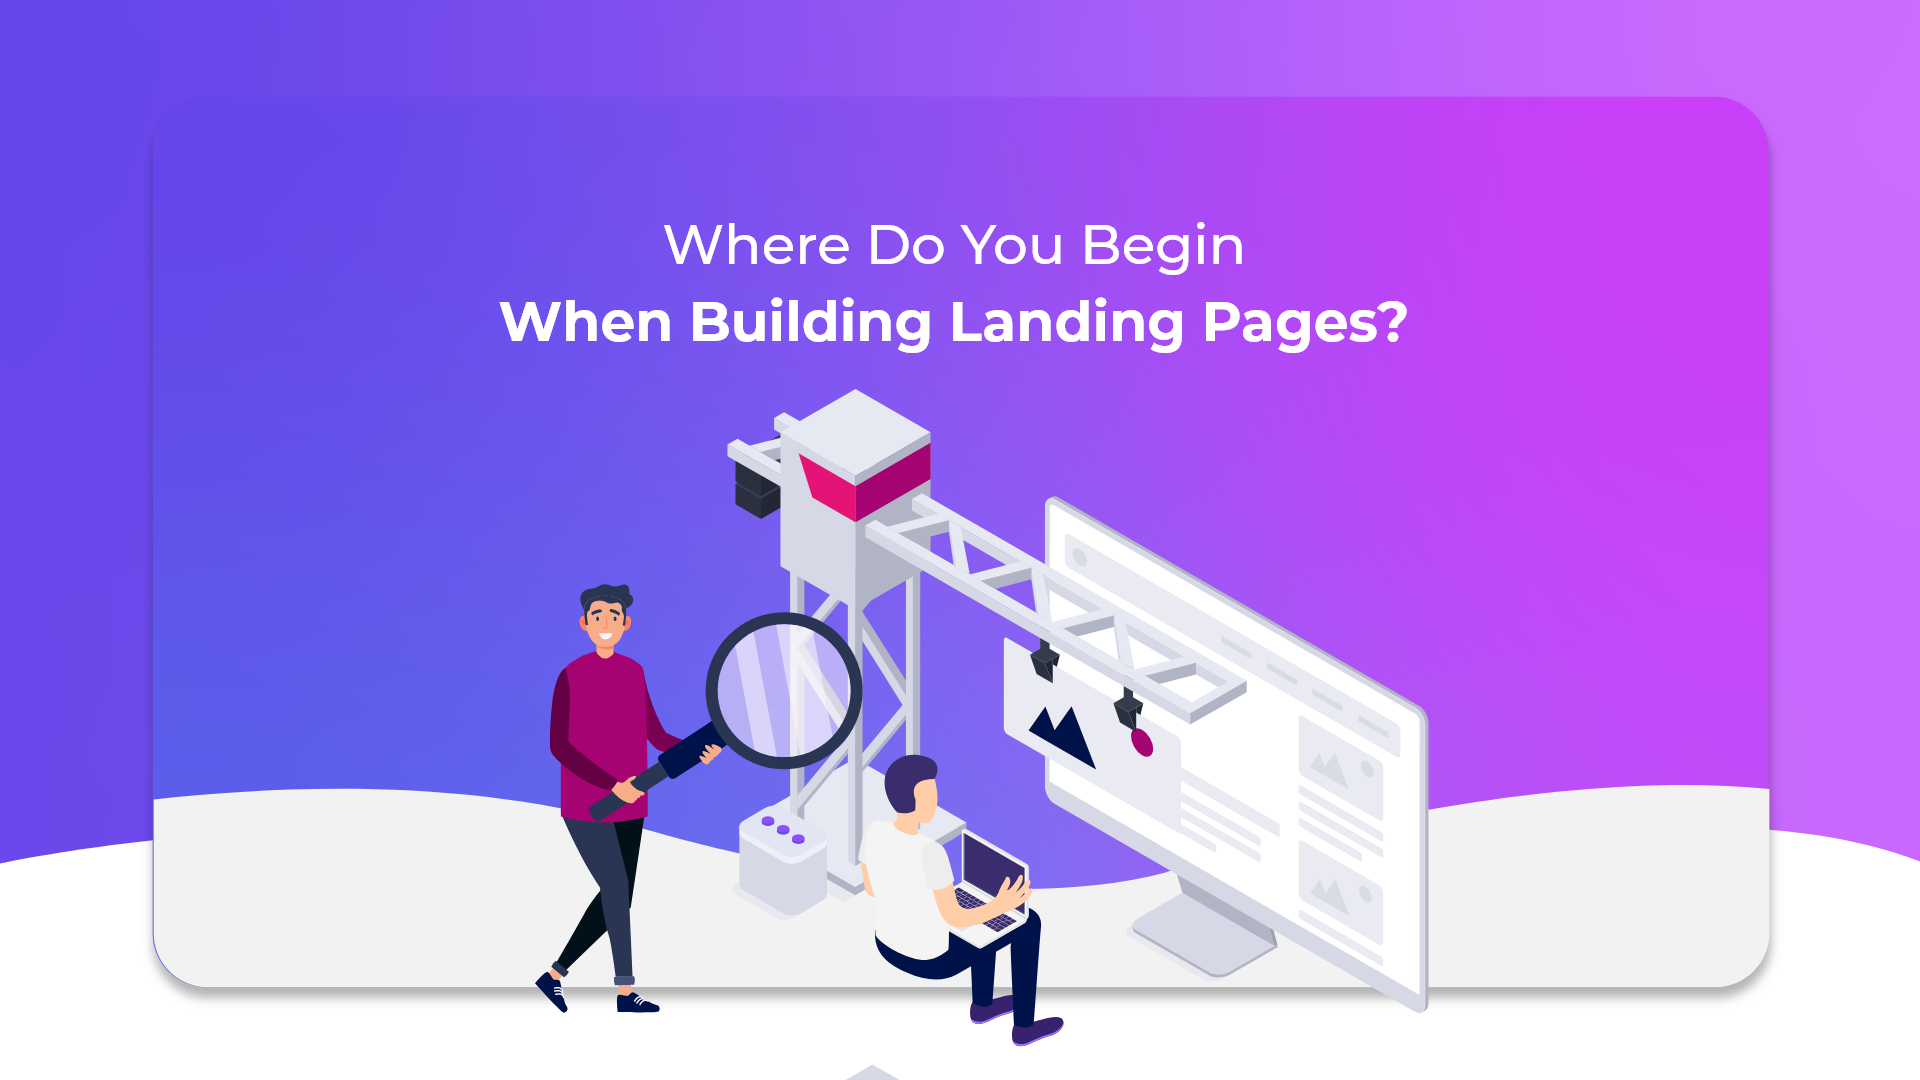 Where Do You Begin When Building Landing Pages?